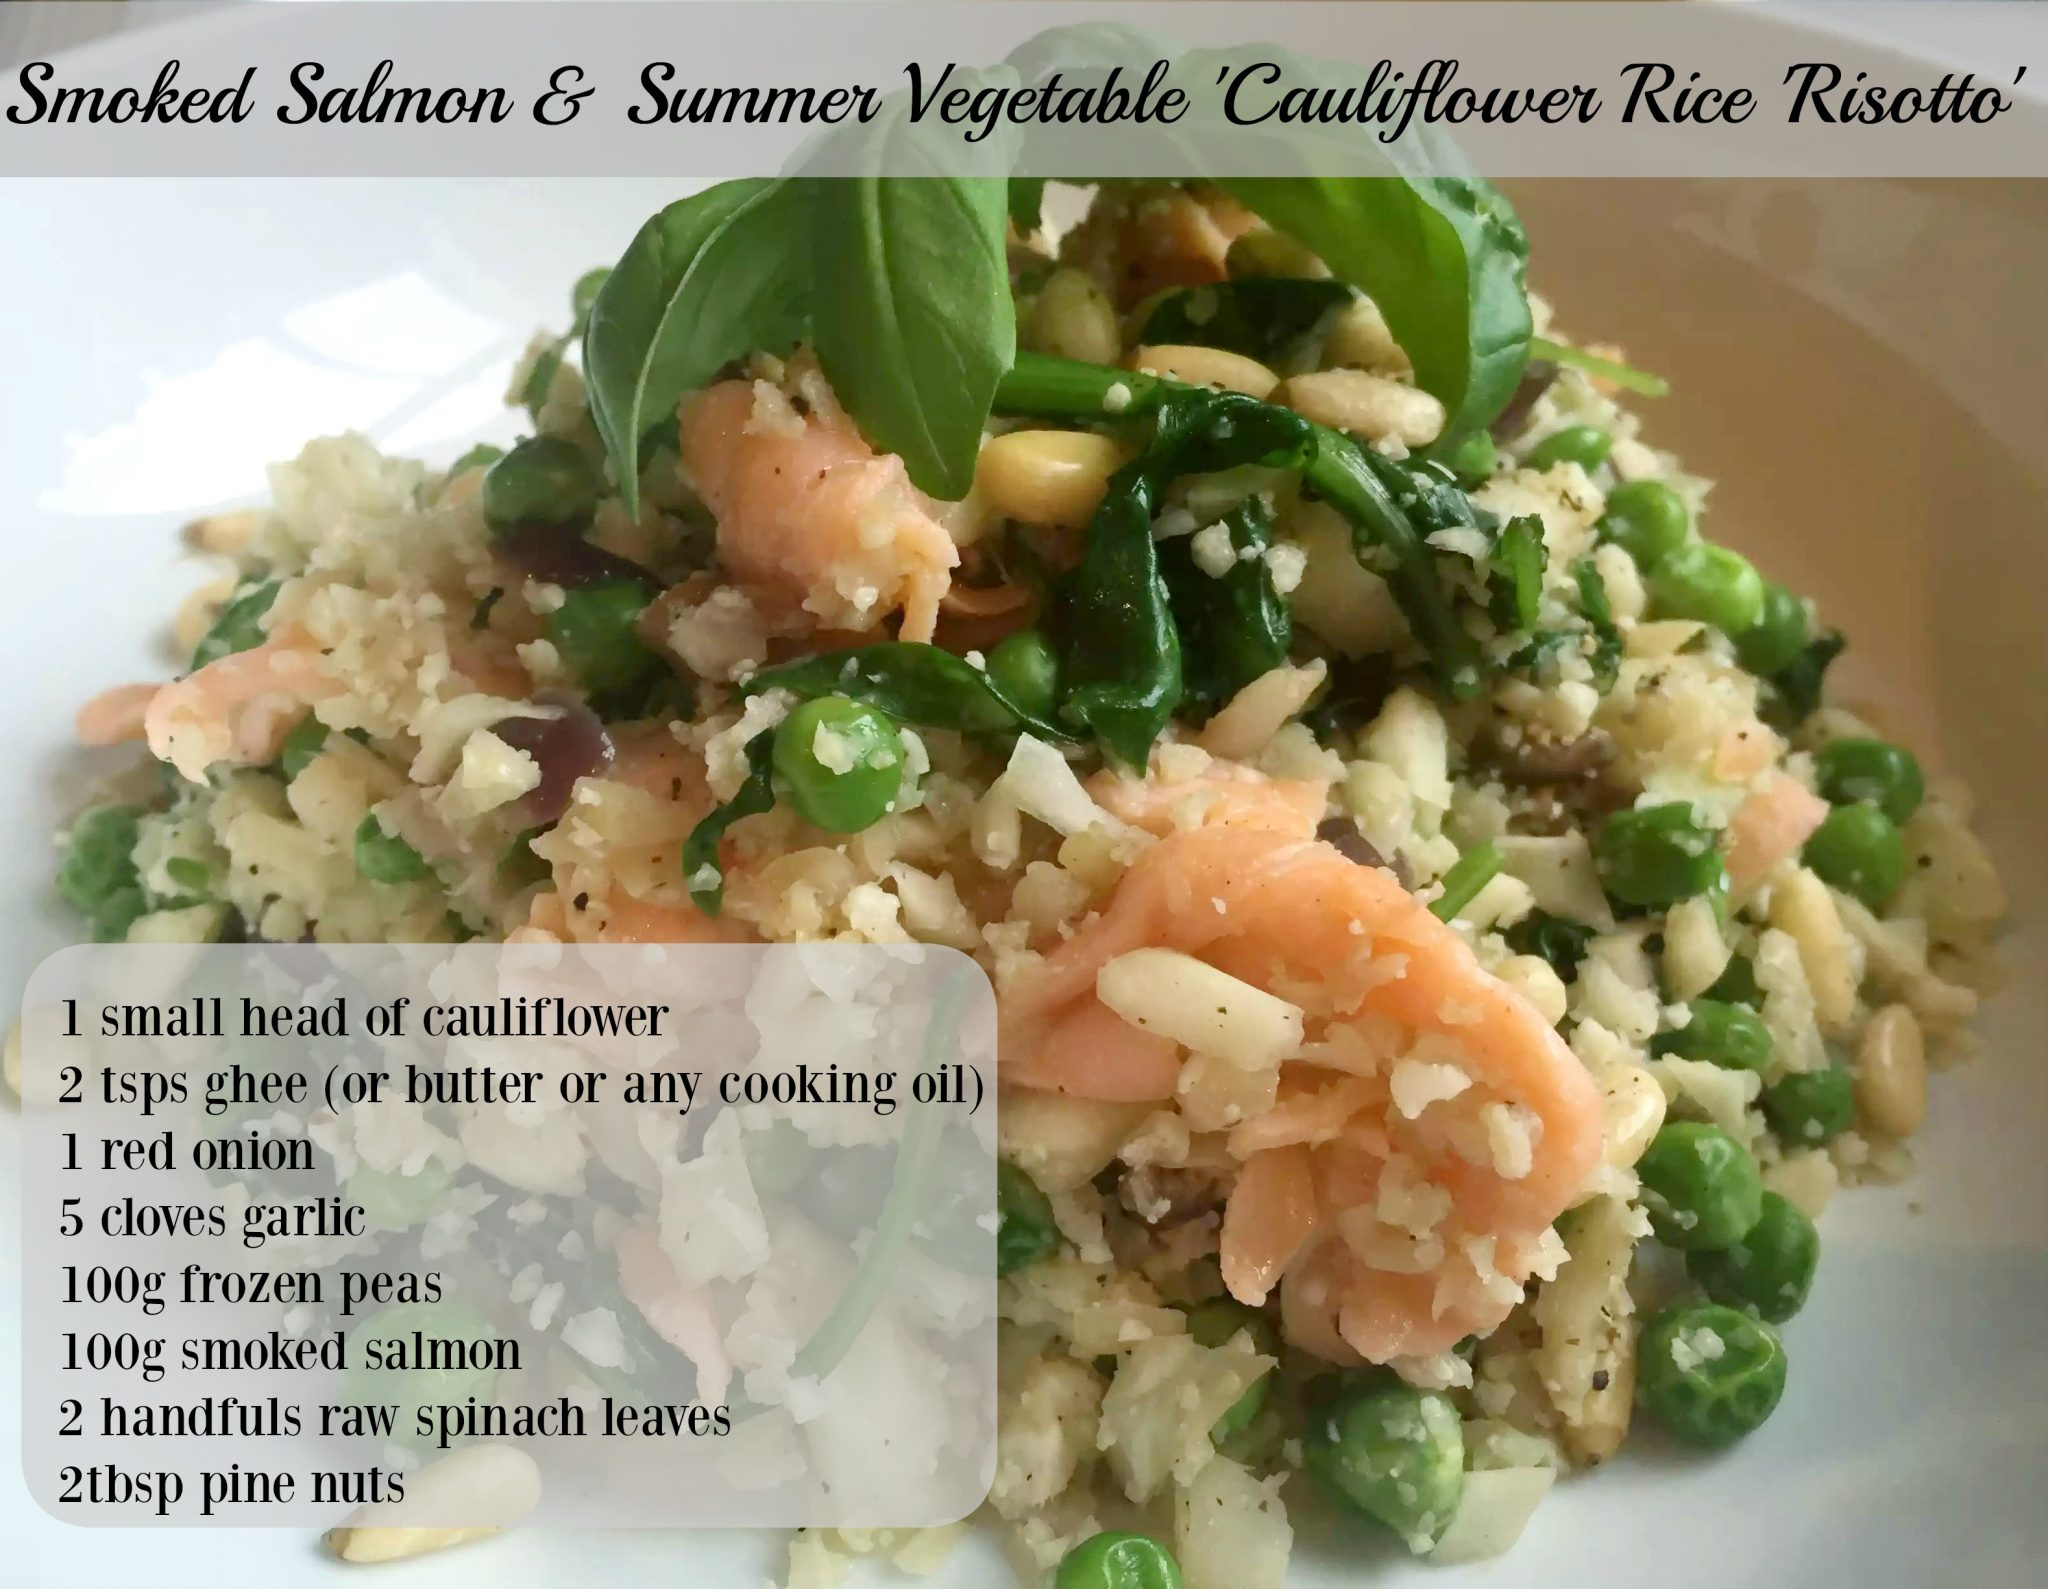 Smoked Salmon Pea Spinach Summer Vegetable Cauliflower Rice Risotto Garlic SCD Paleo Clean Eating Pine Nuts Foodie Healthy Recipe